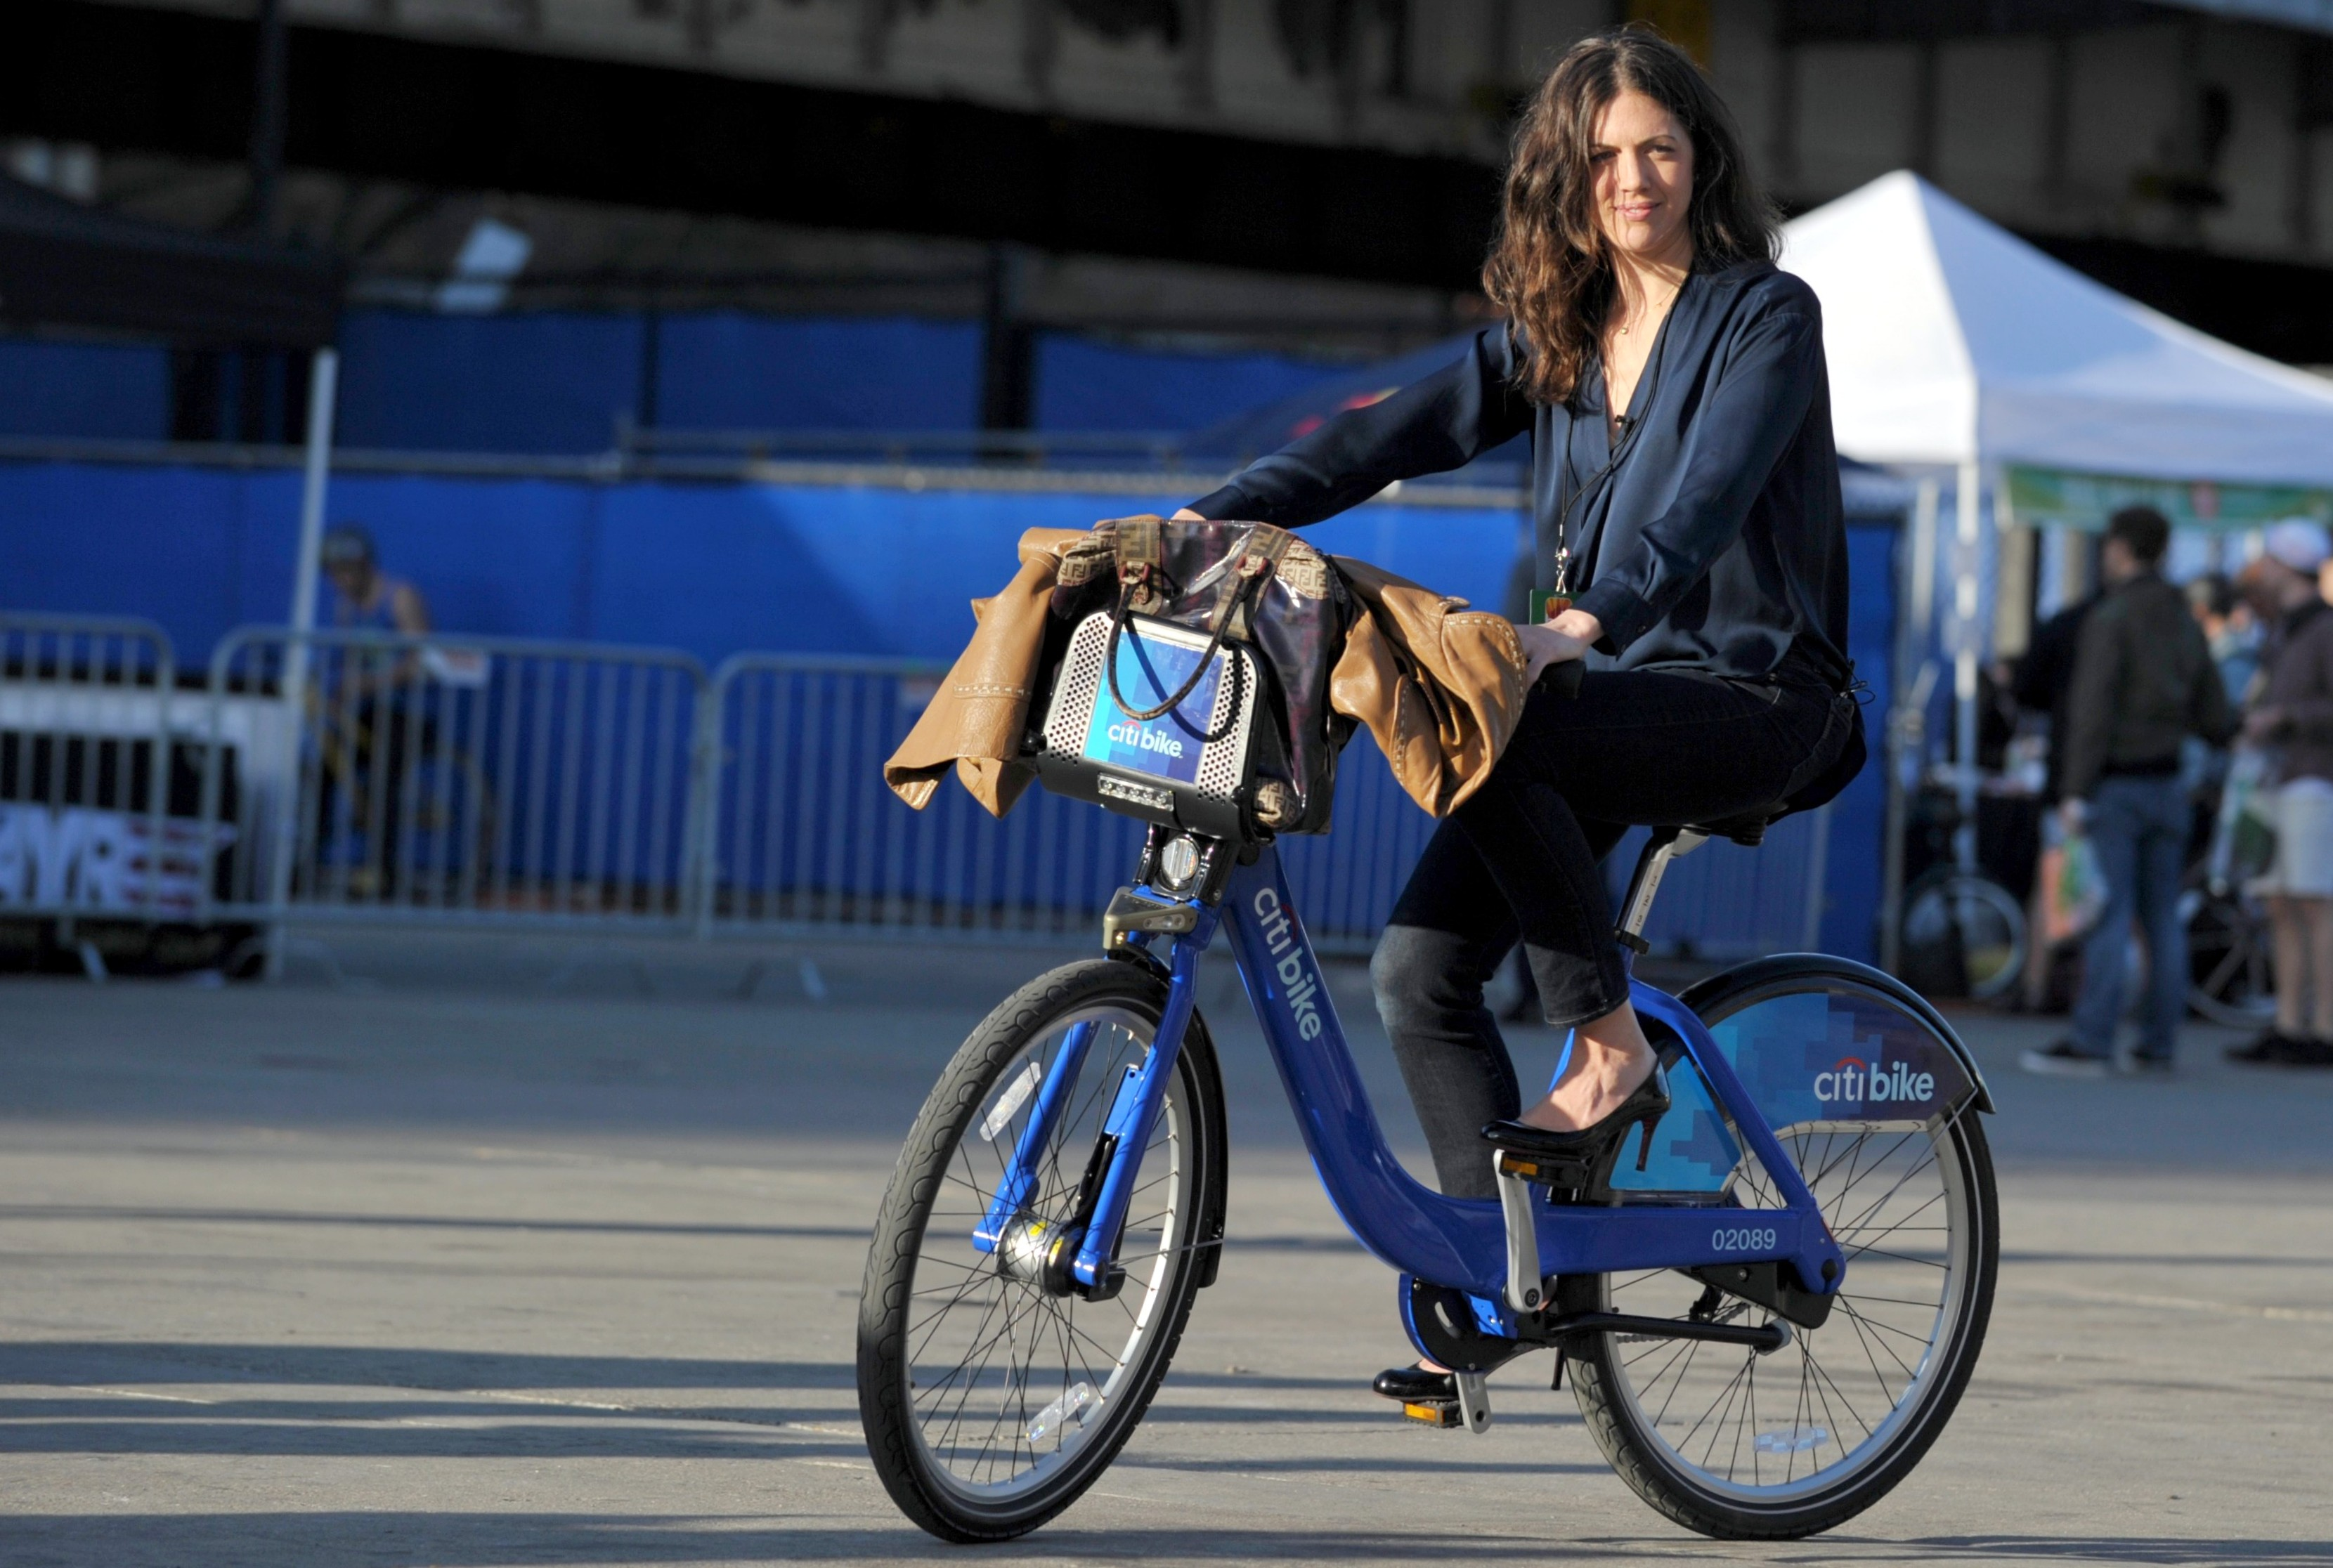 Christine Ribbecke tries out a Citibike model bicycle at Bike Expo, an exposition for cyclists, May 3, 2013 in New York. New Yorkers prepare for the launch of the Citibike bike sharing program, which will involve thousands of bicycles at hundreds of locations around the city tol be available to rent. AFP PHOTO/Stan HONDA        (Photo credit should read STAN HONDA/AFP/Getty Images)